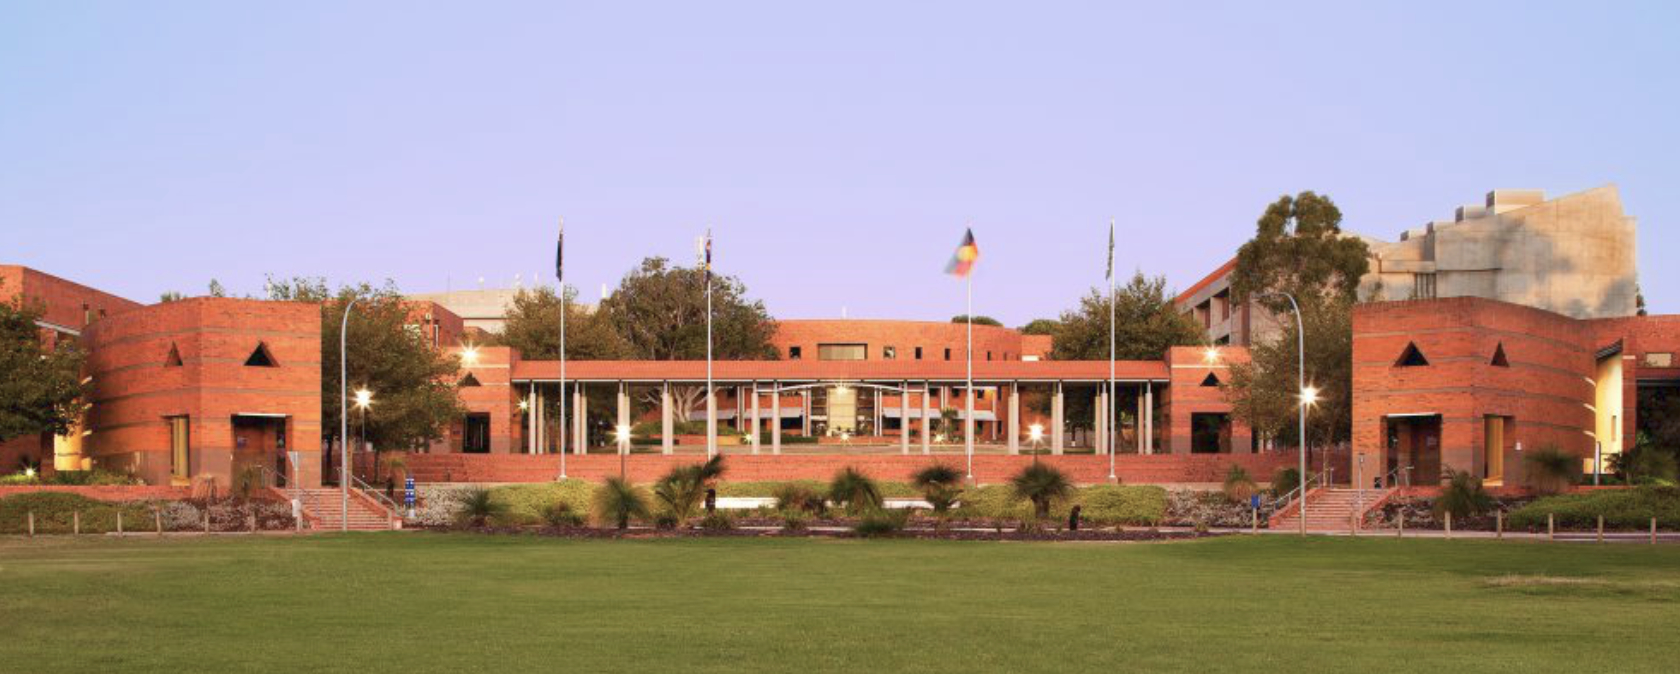 Curtin University flags flying